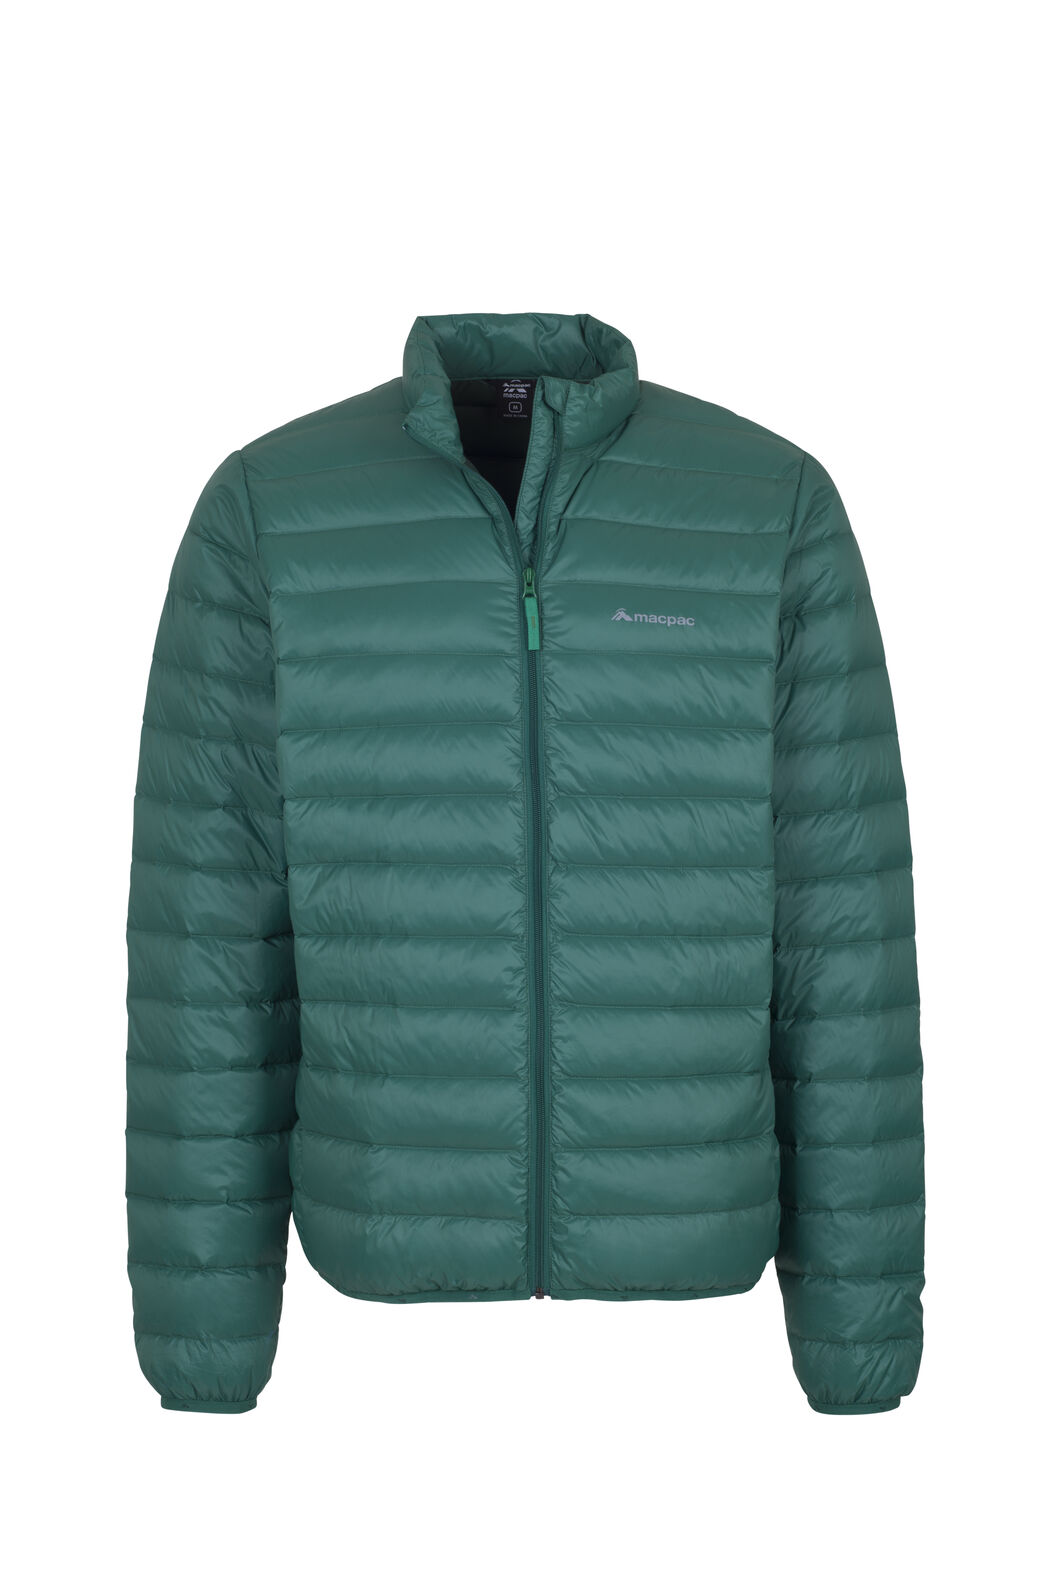 Macpac Uber Light Down Jacket — Men's, Evergreen, hi-res